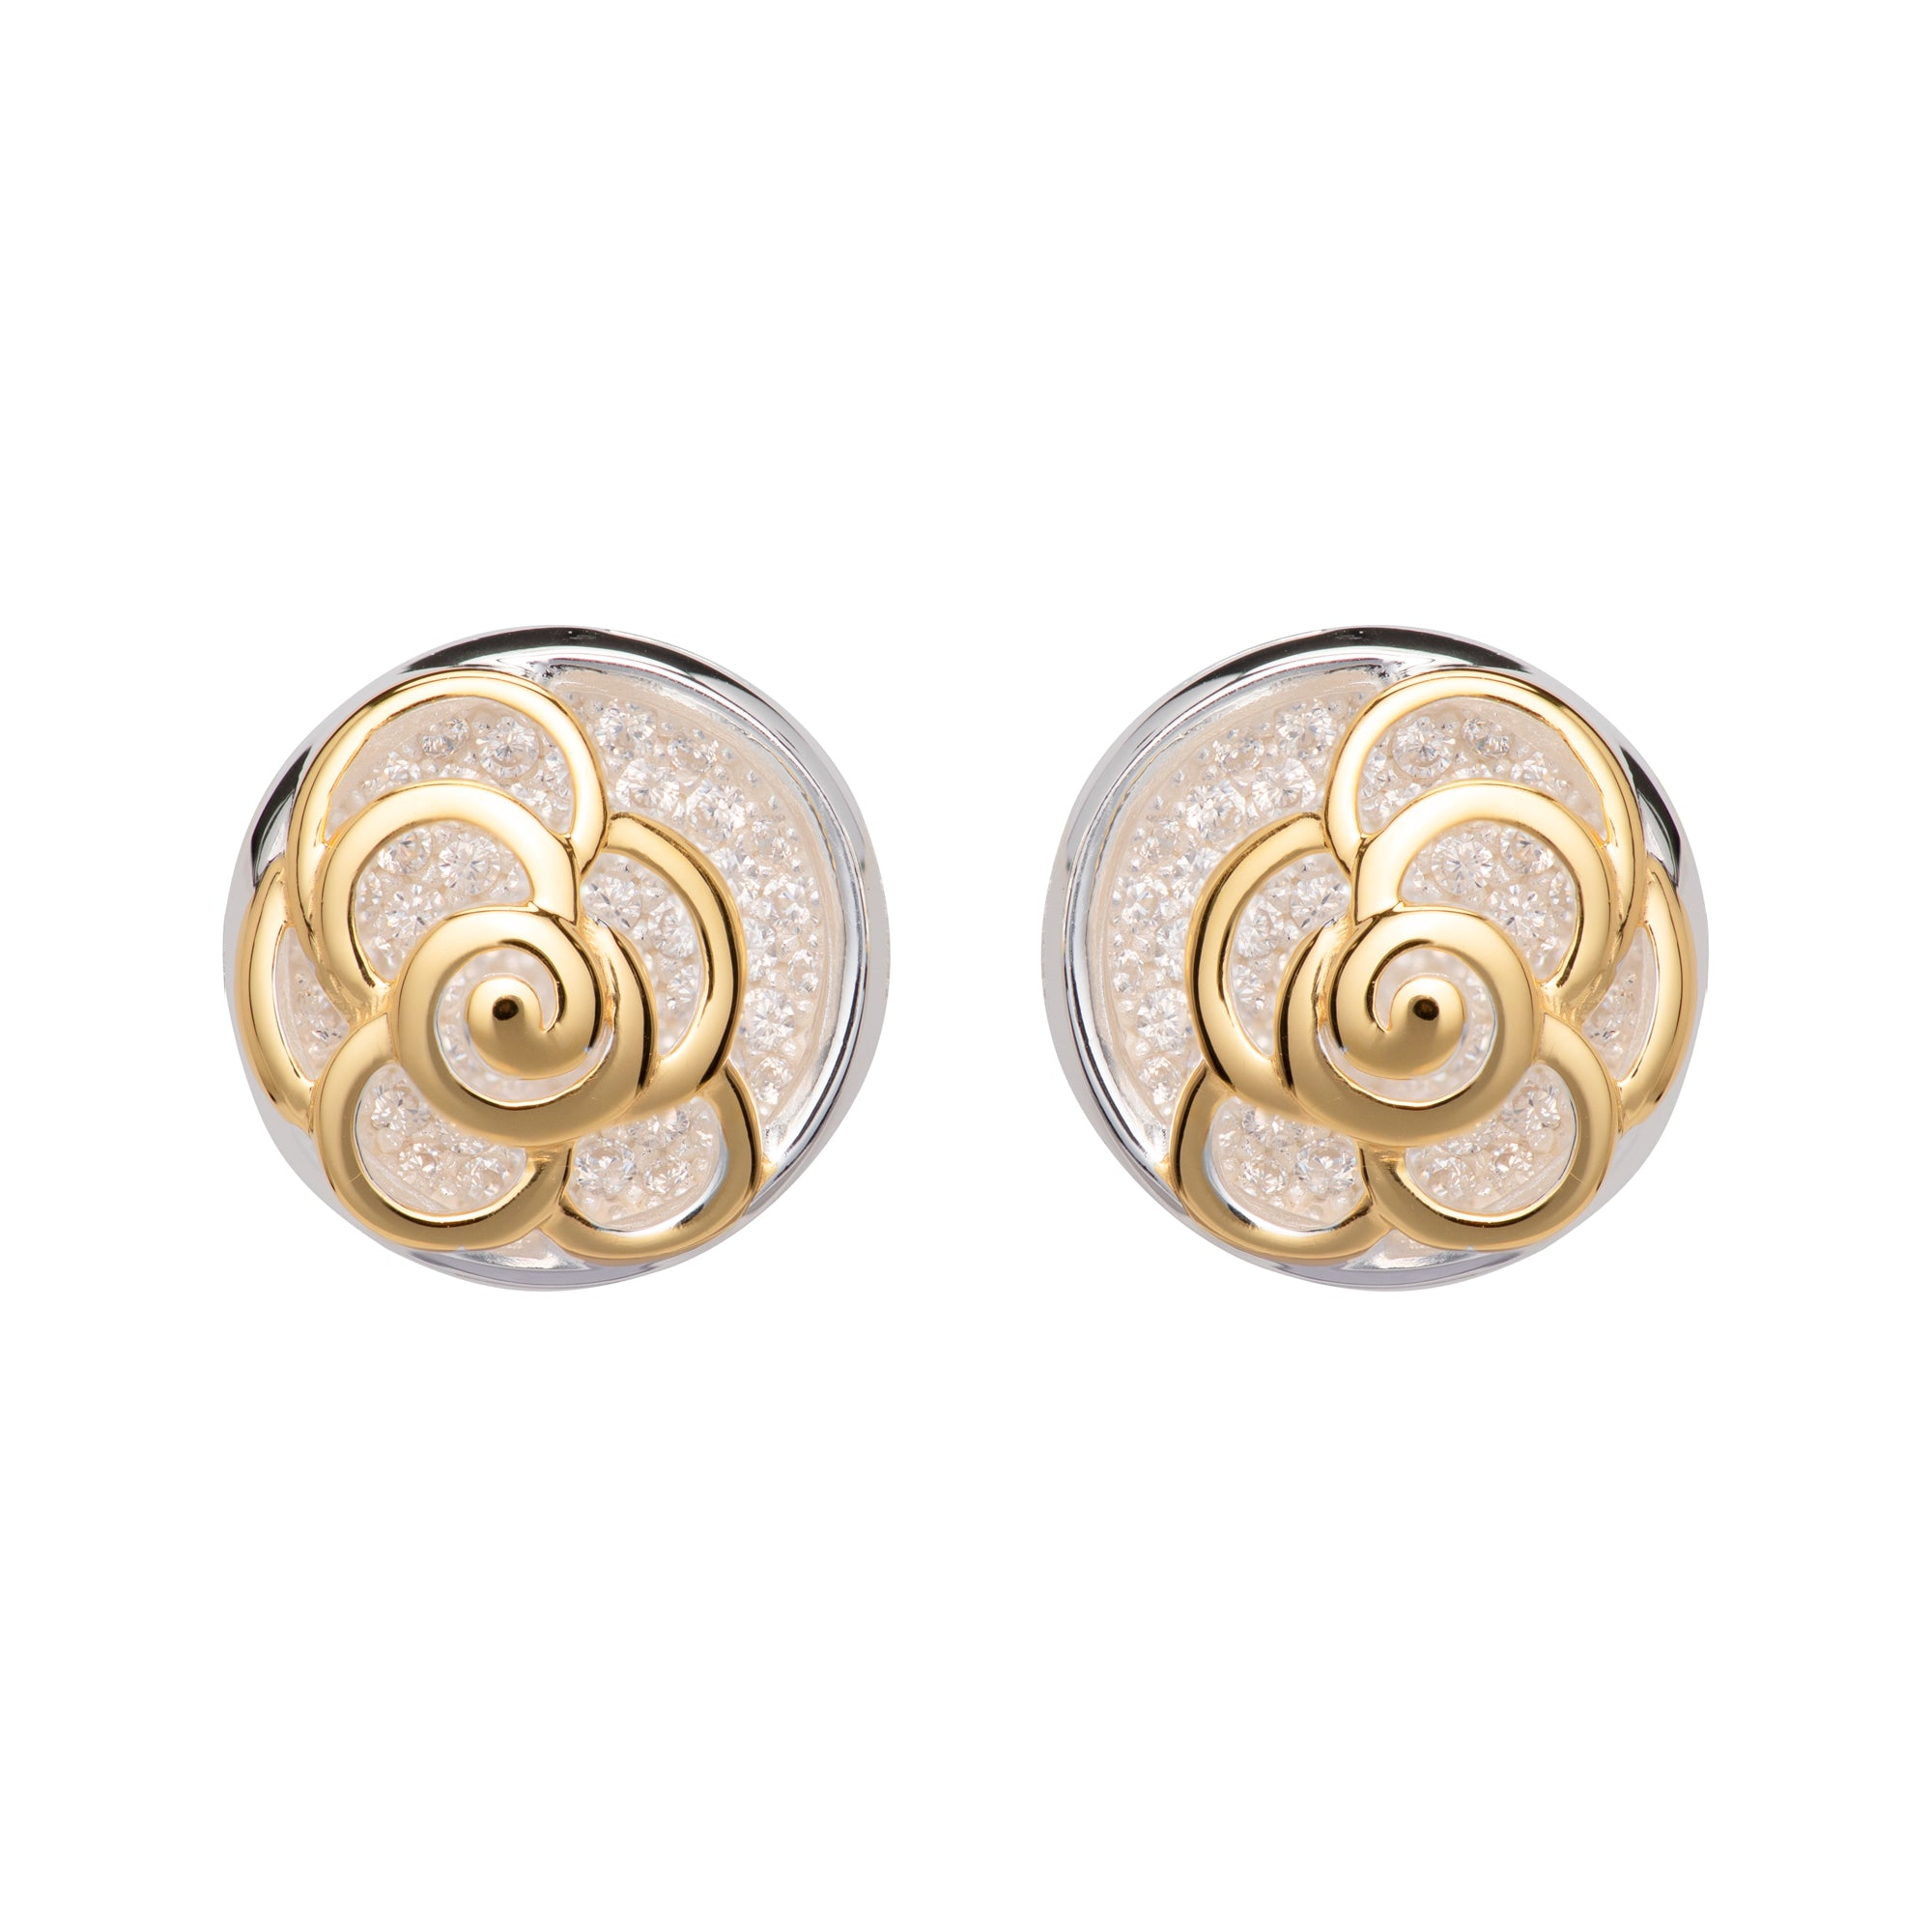 Sterling Silver and Yellow Gold Plate Flower Stud Earrings